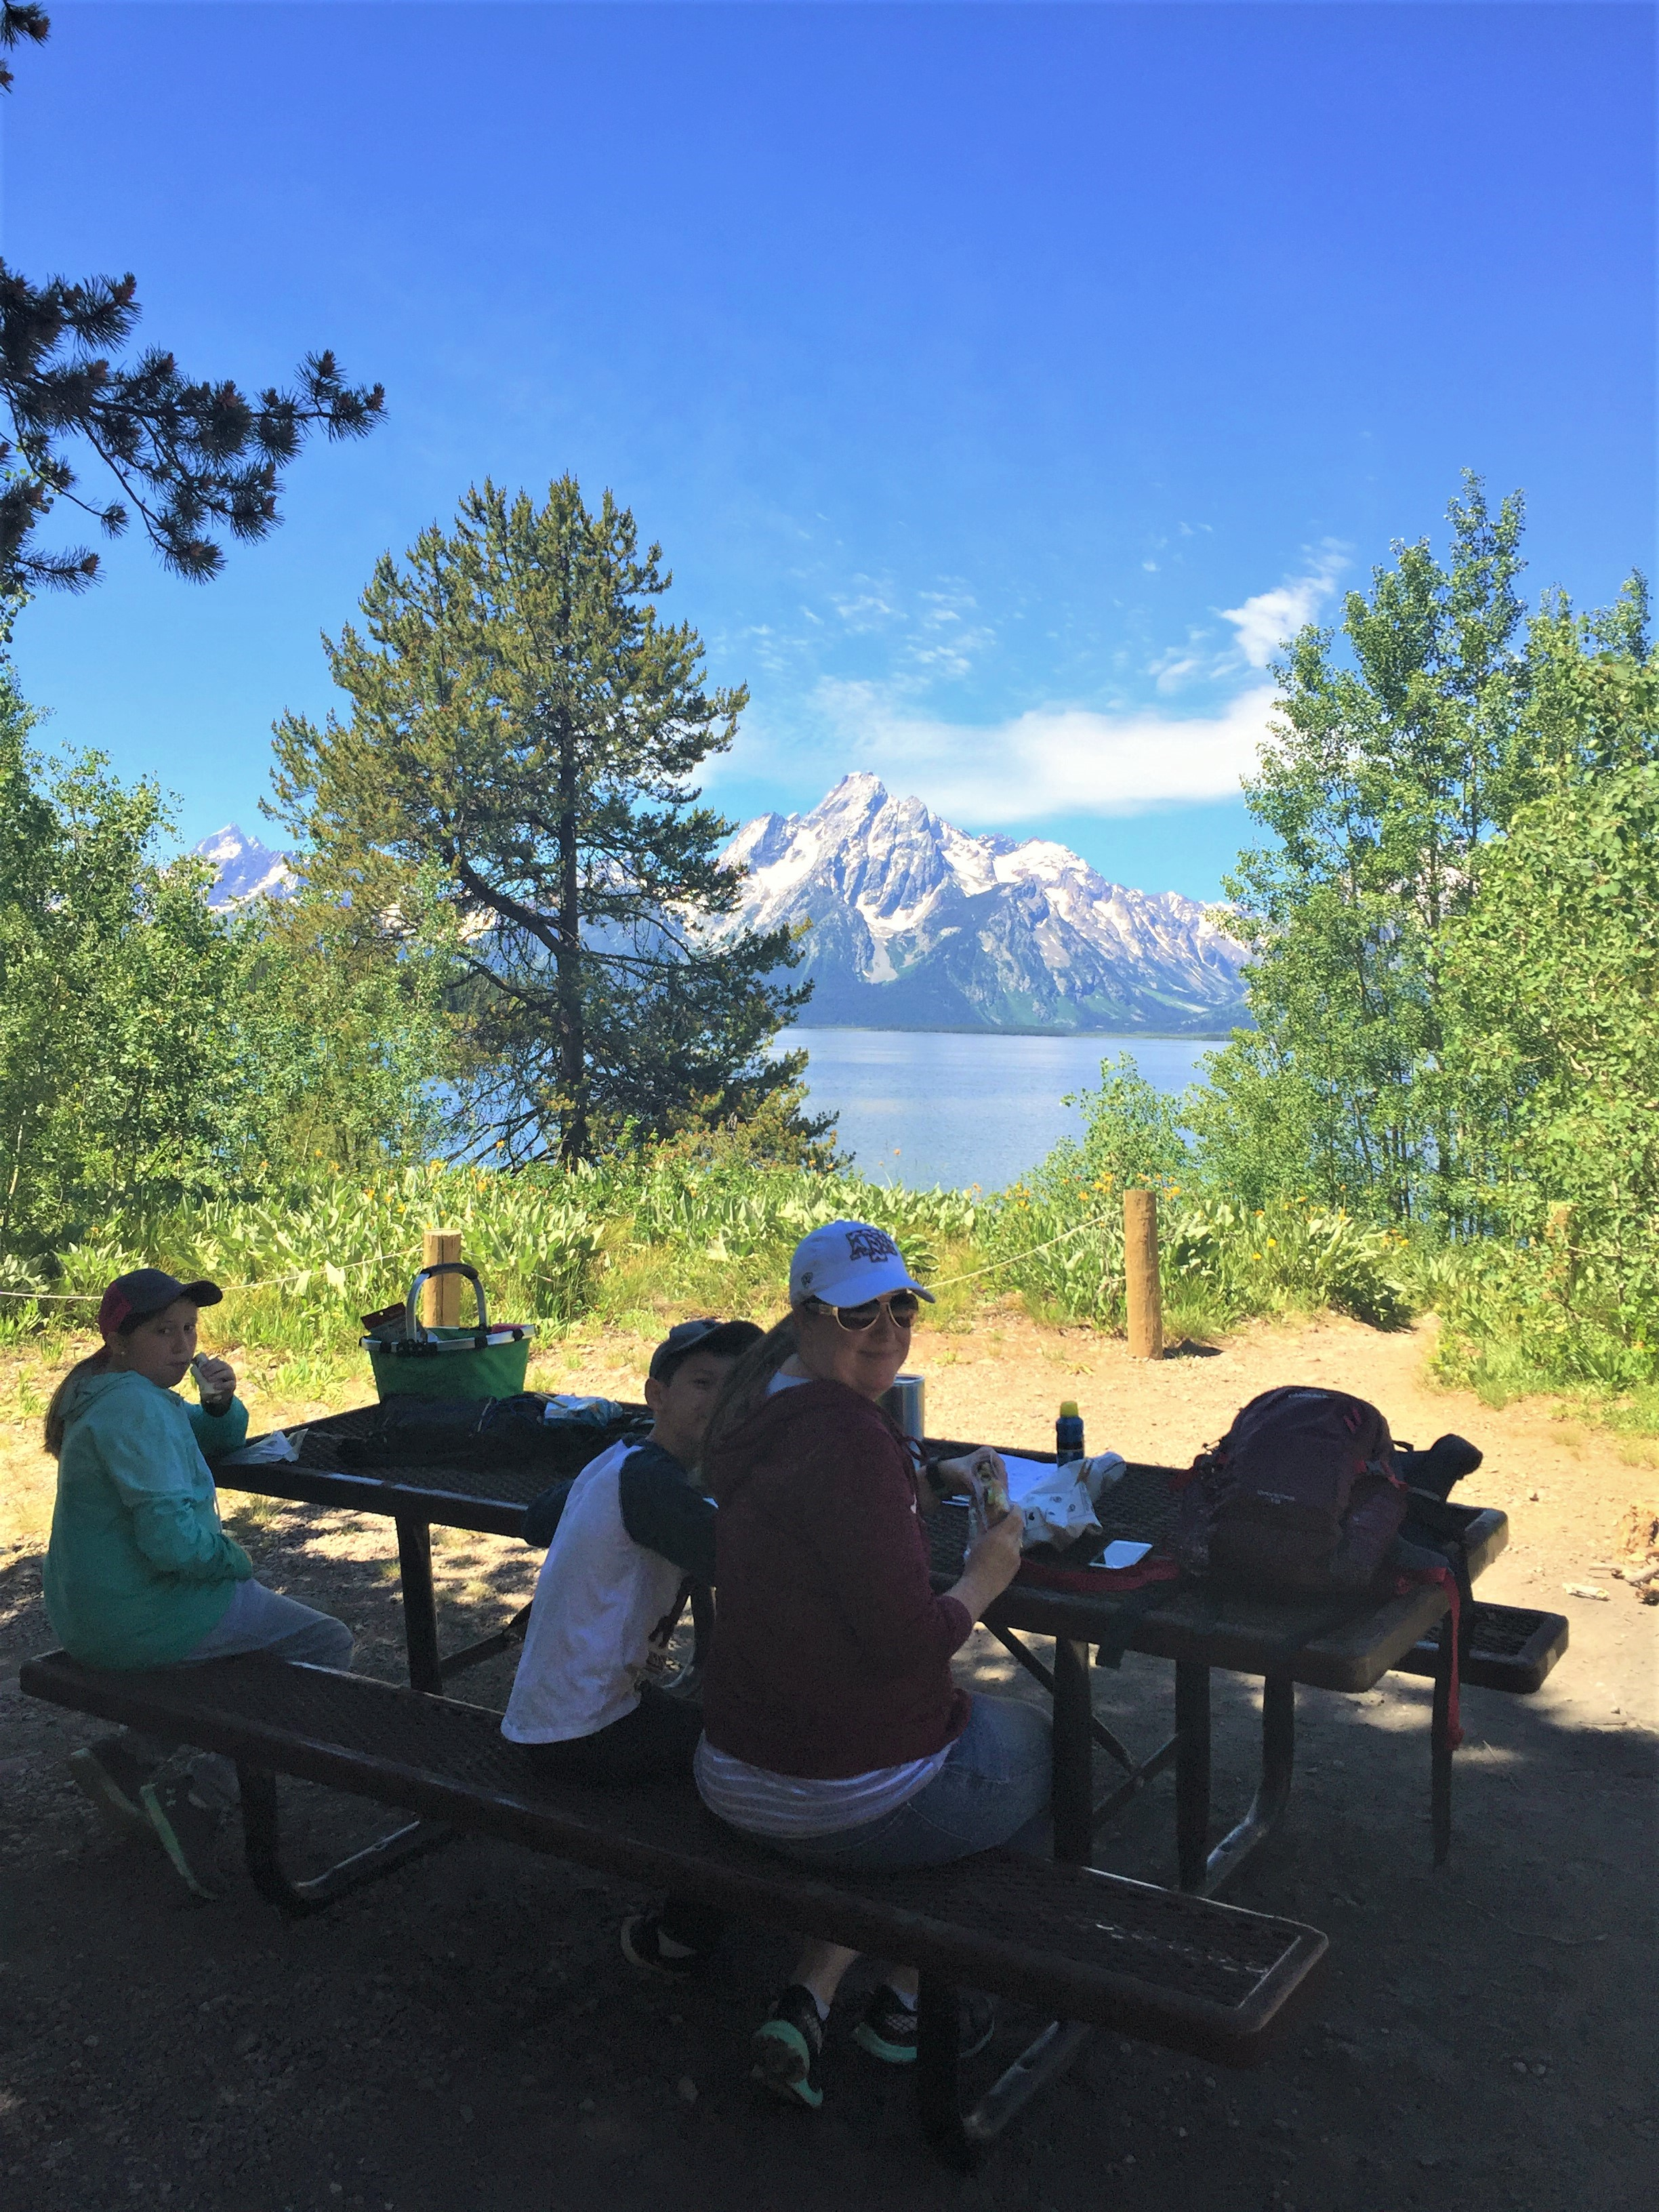 A Guide to Visiting Grand Teton National Park